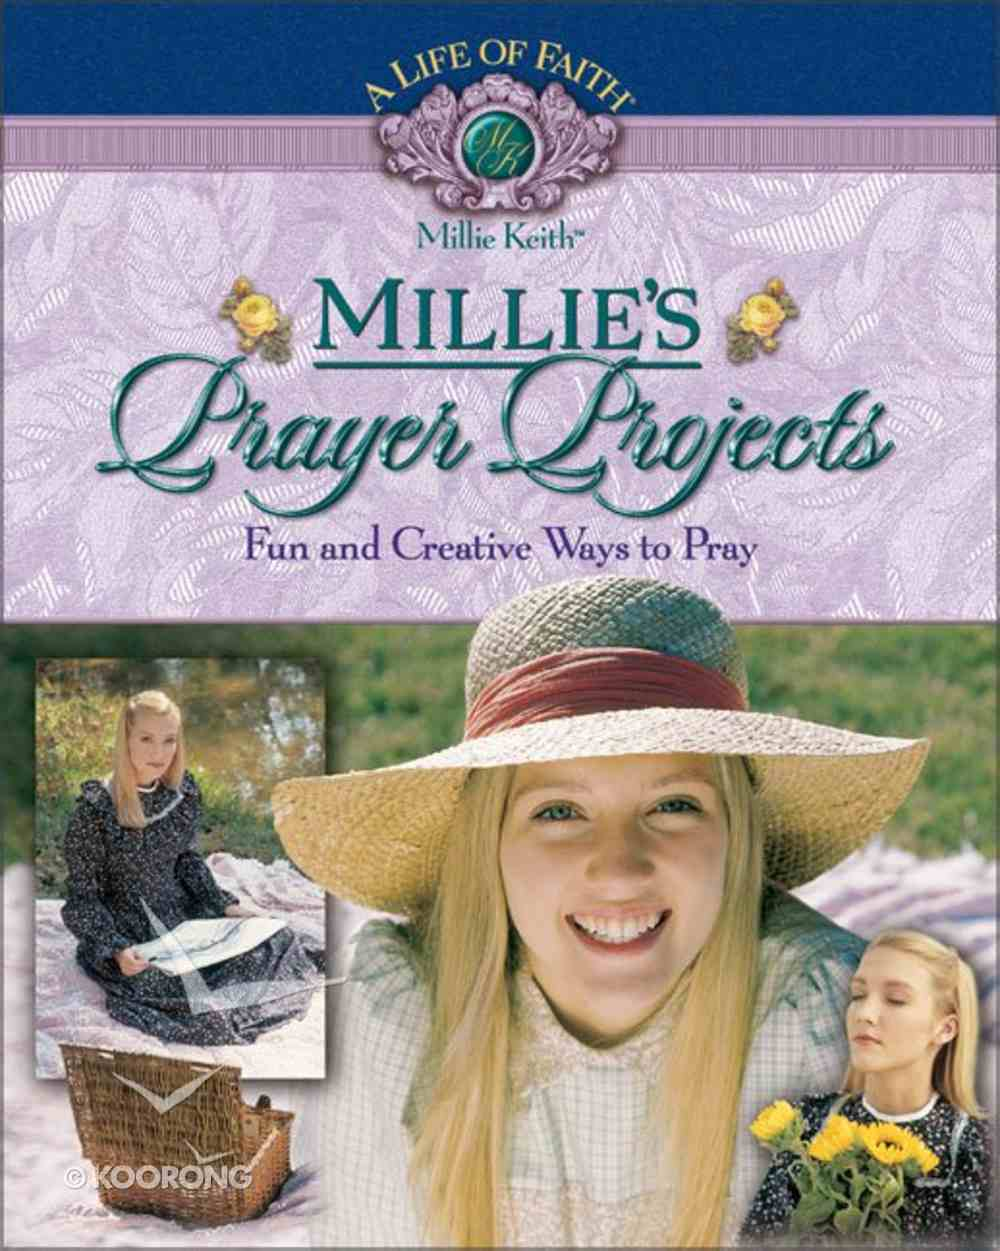 Millie's Prayer Projects (Life Of Faith: Millie Keith Series) Paperback